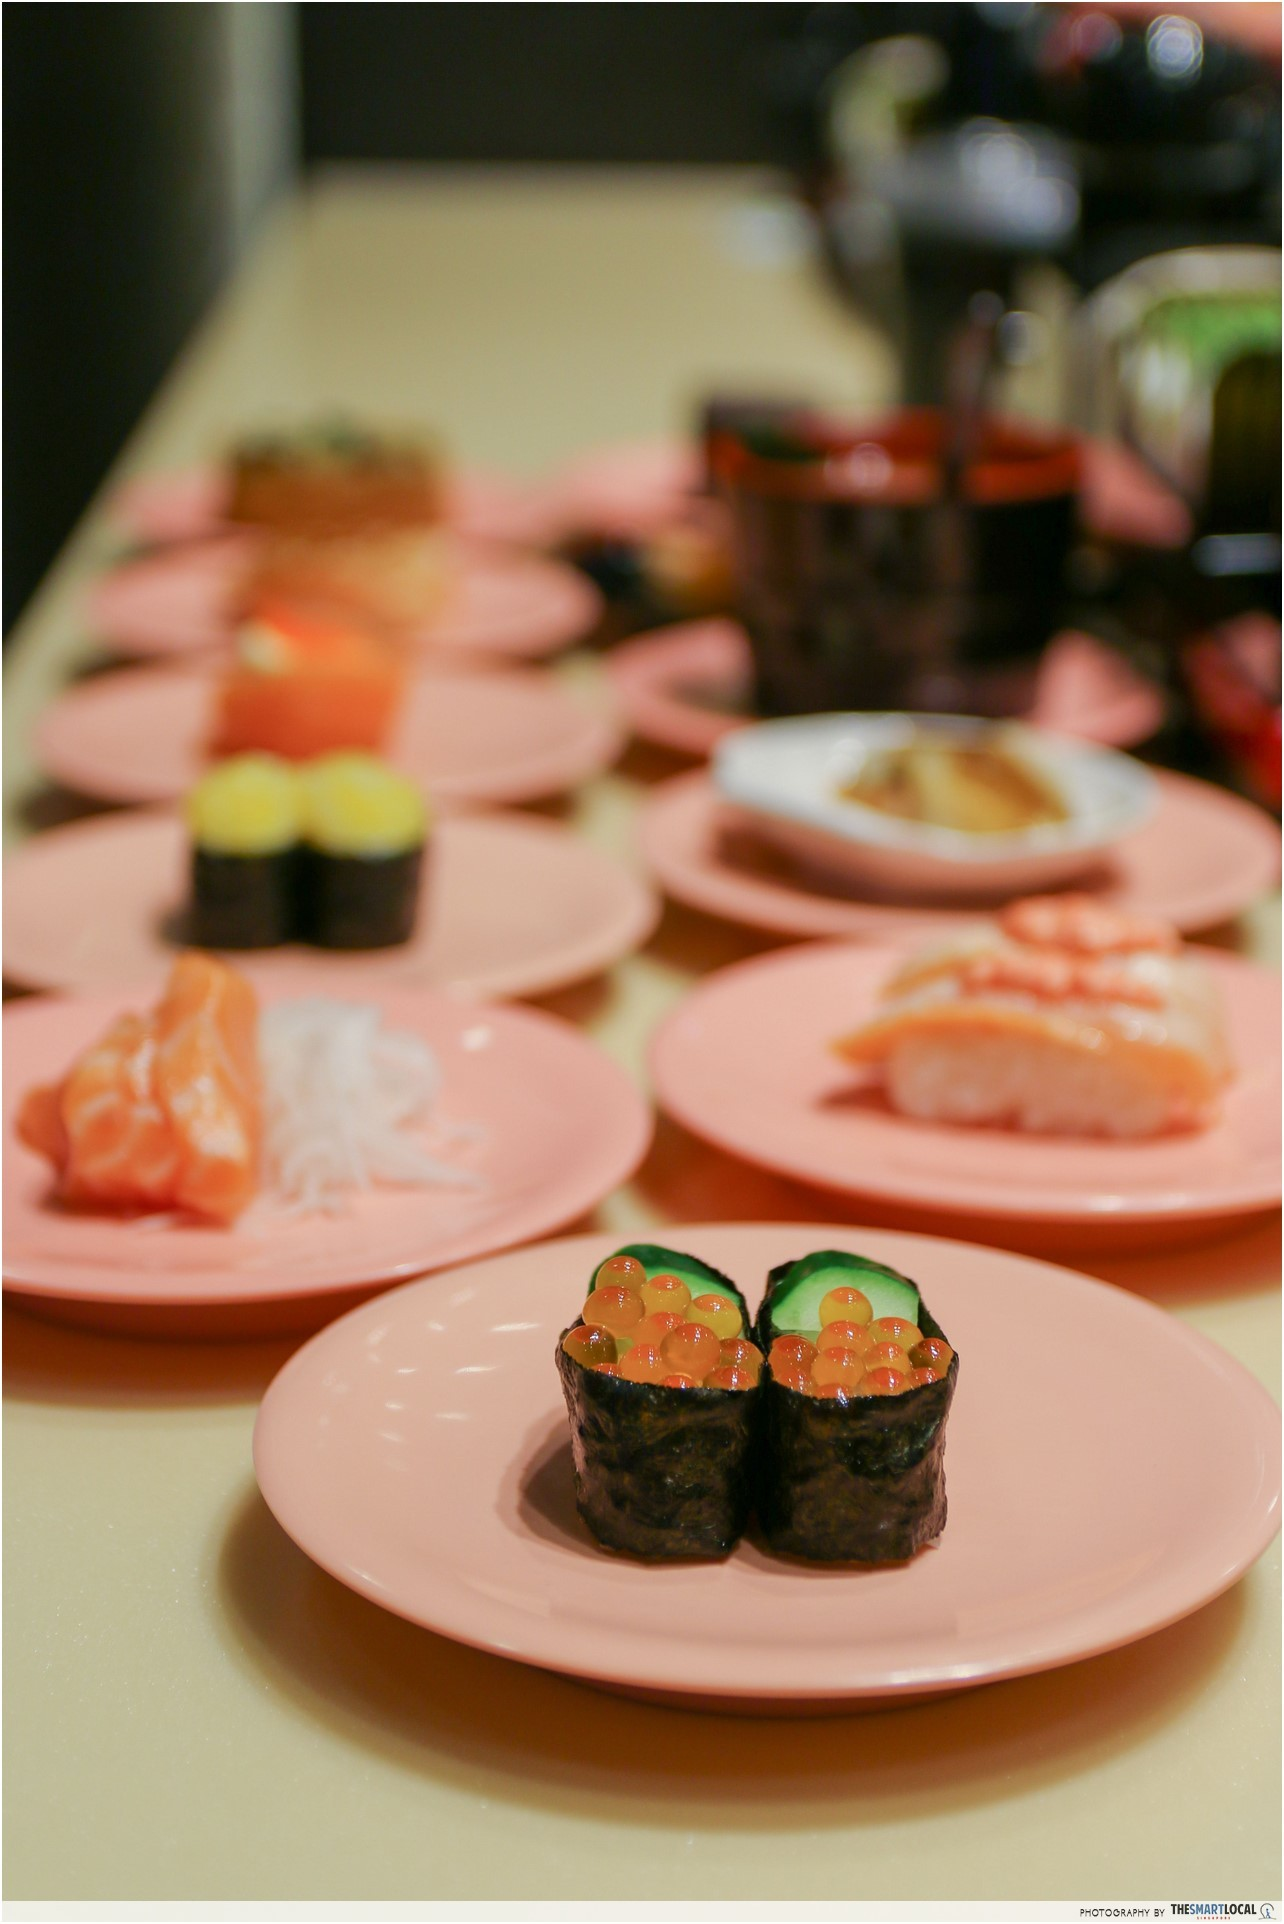 10 Things You Never Knew About Sushi Express - The $1 50++ Sushi Chain